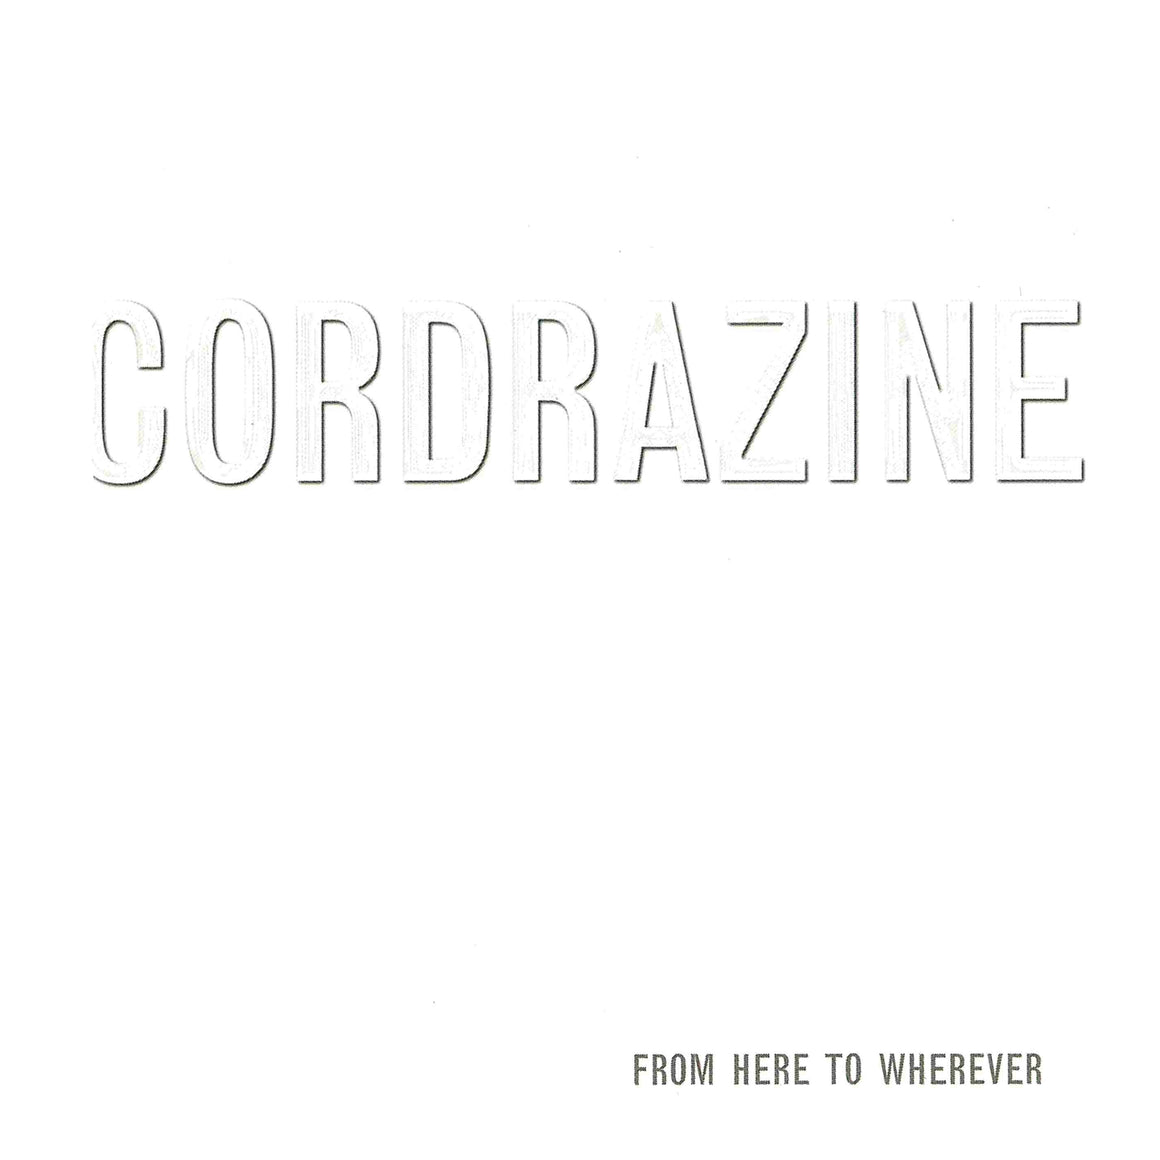 Cordrazine - From Here To Wherever (VINYL)